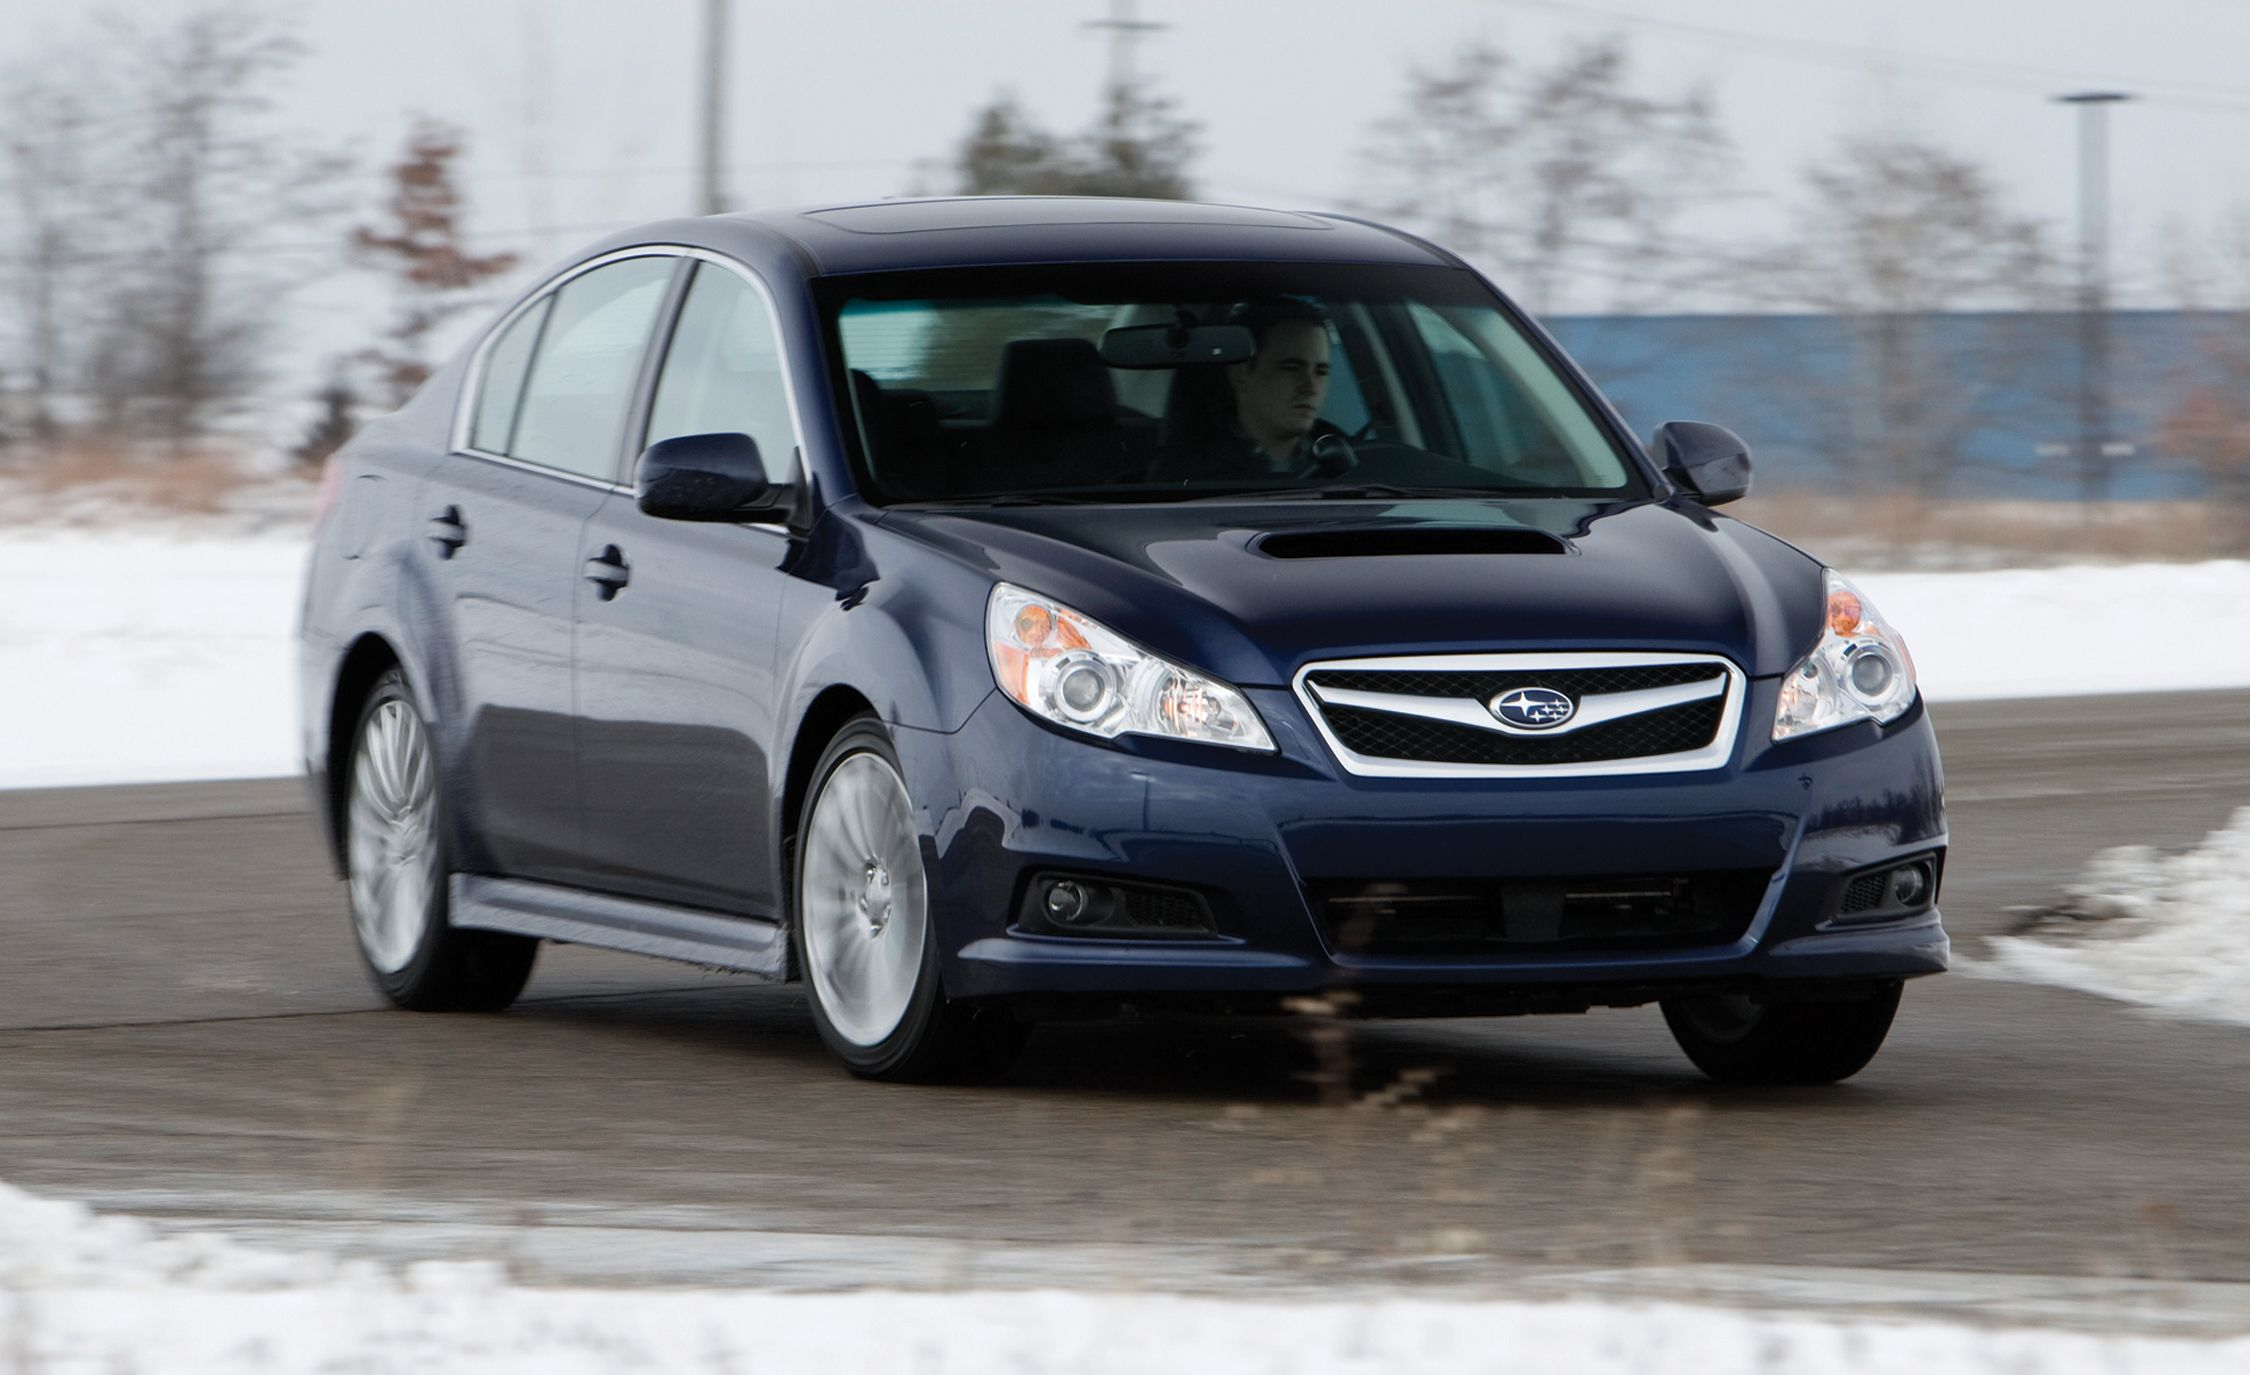 2011 subaru legacy 2 5gt limited first drive review car and driver. Black Bedroom Furniture Sets. Home Design Ideas